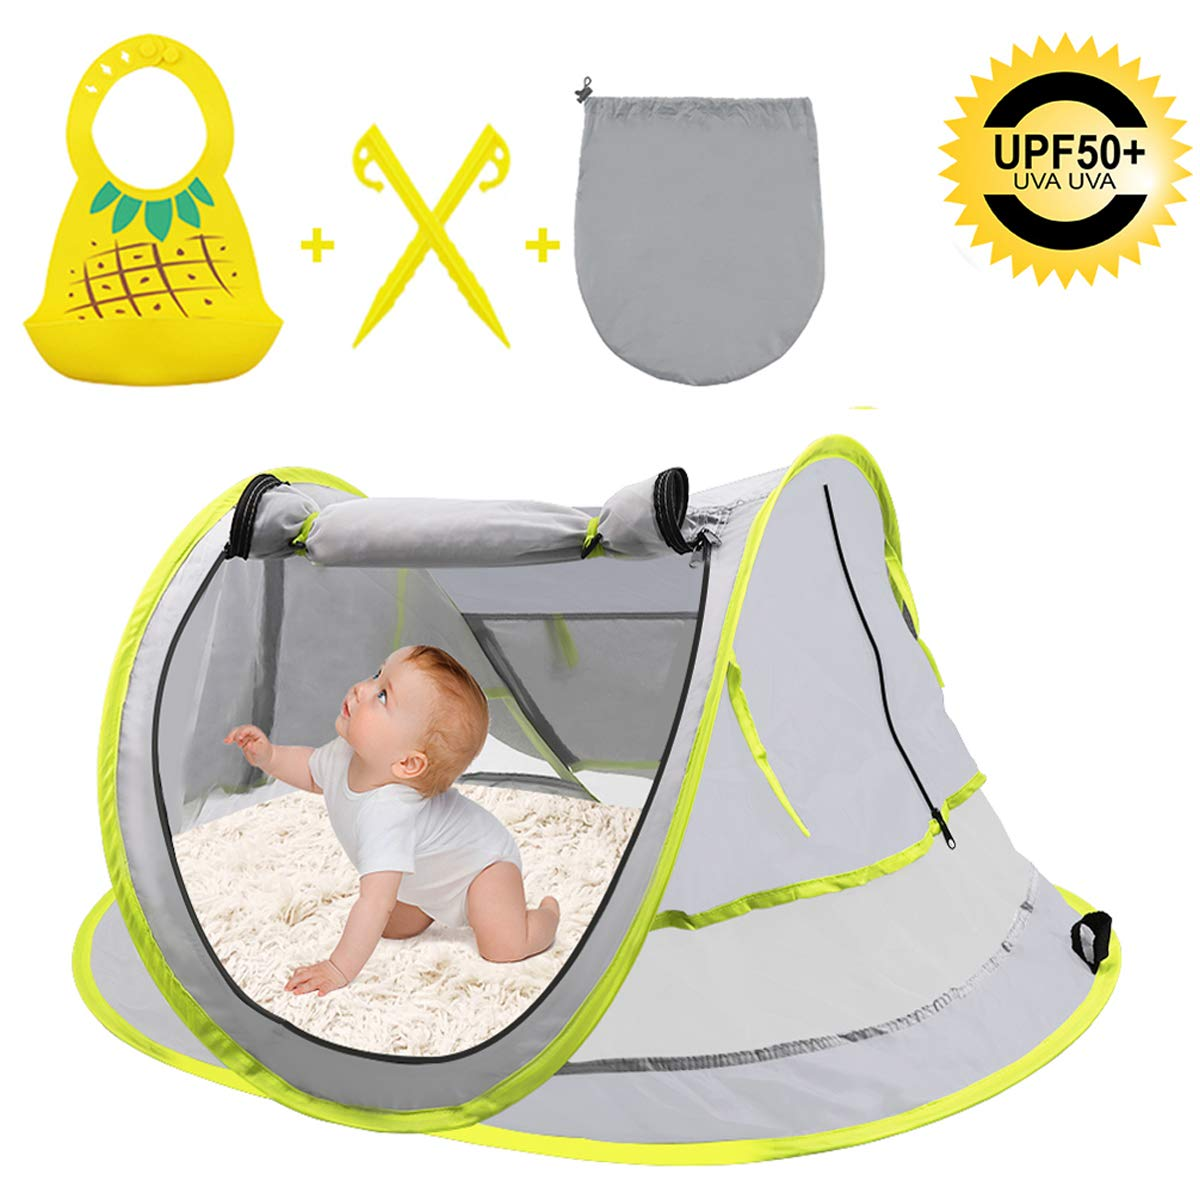 Baby Beach Tent, Portable Baby Travel Bed with Baby bib, Auto Pop Up, UPF 50+ UV Protection, Sun Shelters and Mosquito Net with 2 Pegs, Ultralight Weight Tent for Infant Kids Home and Outside